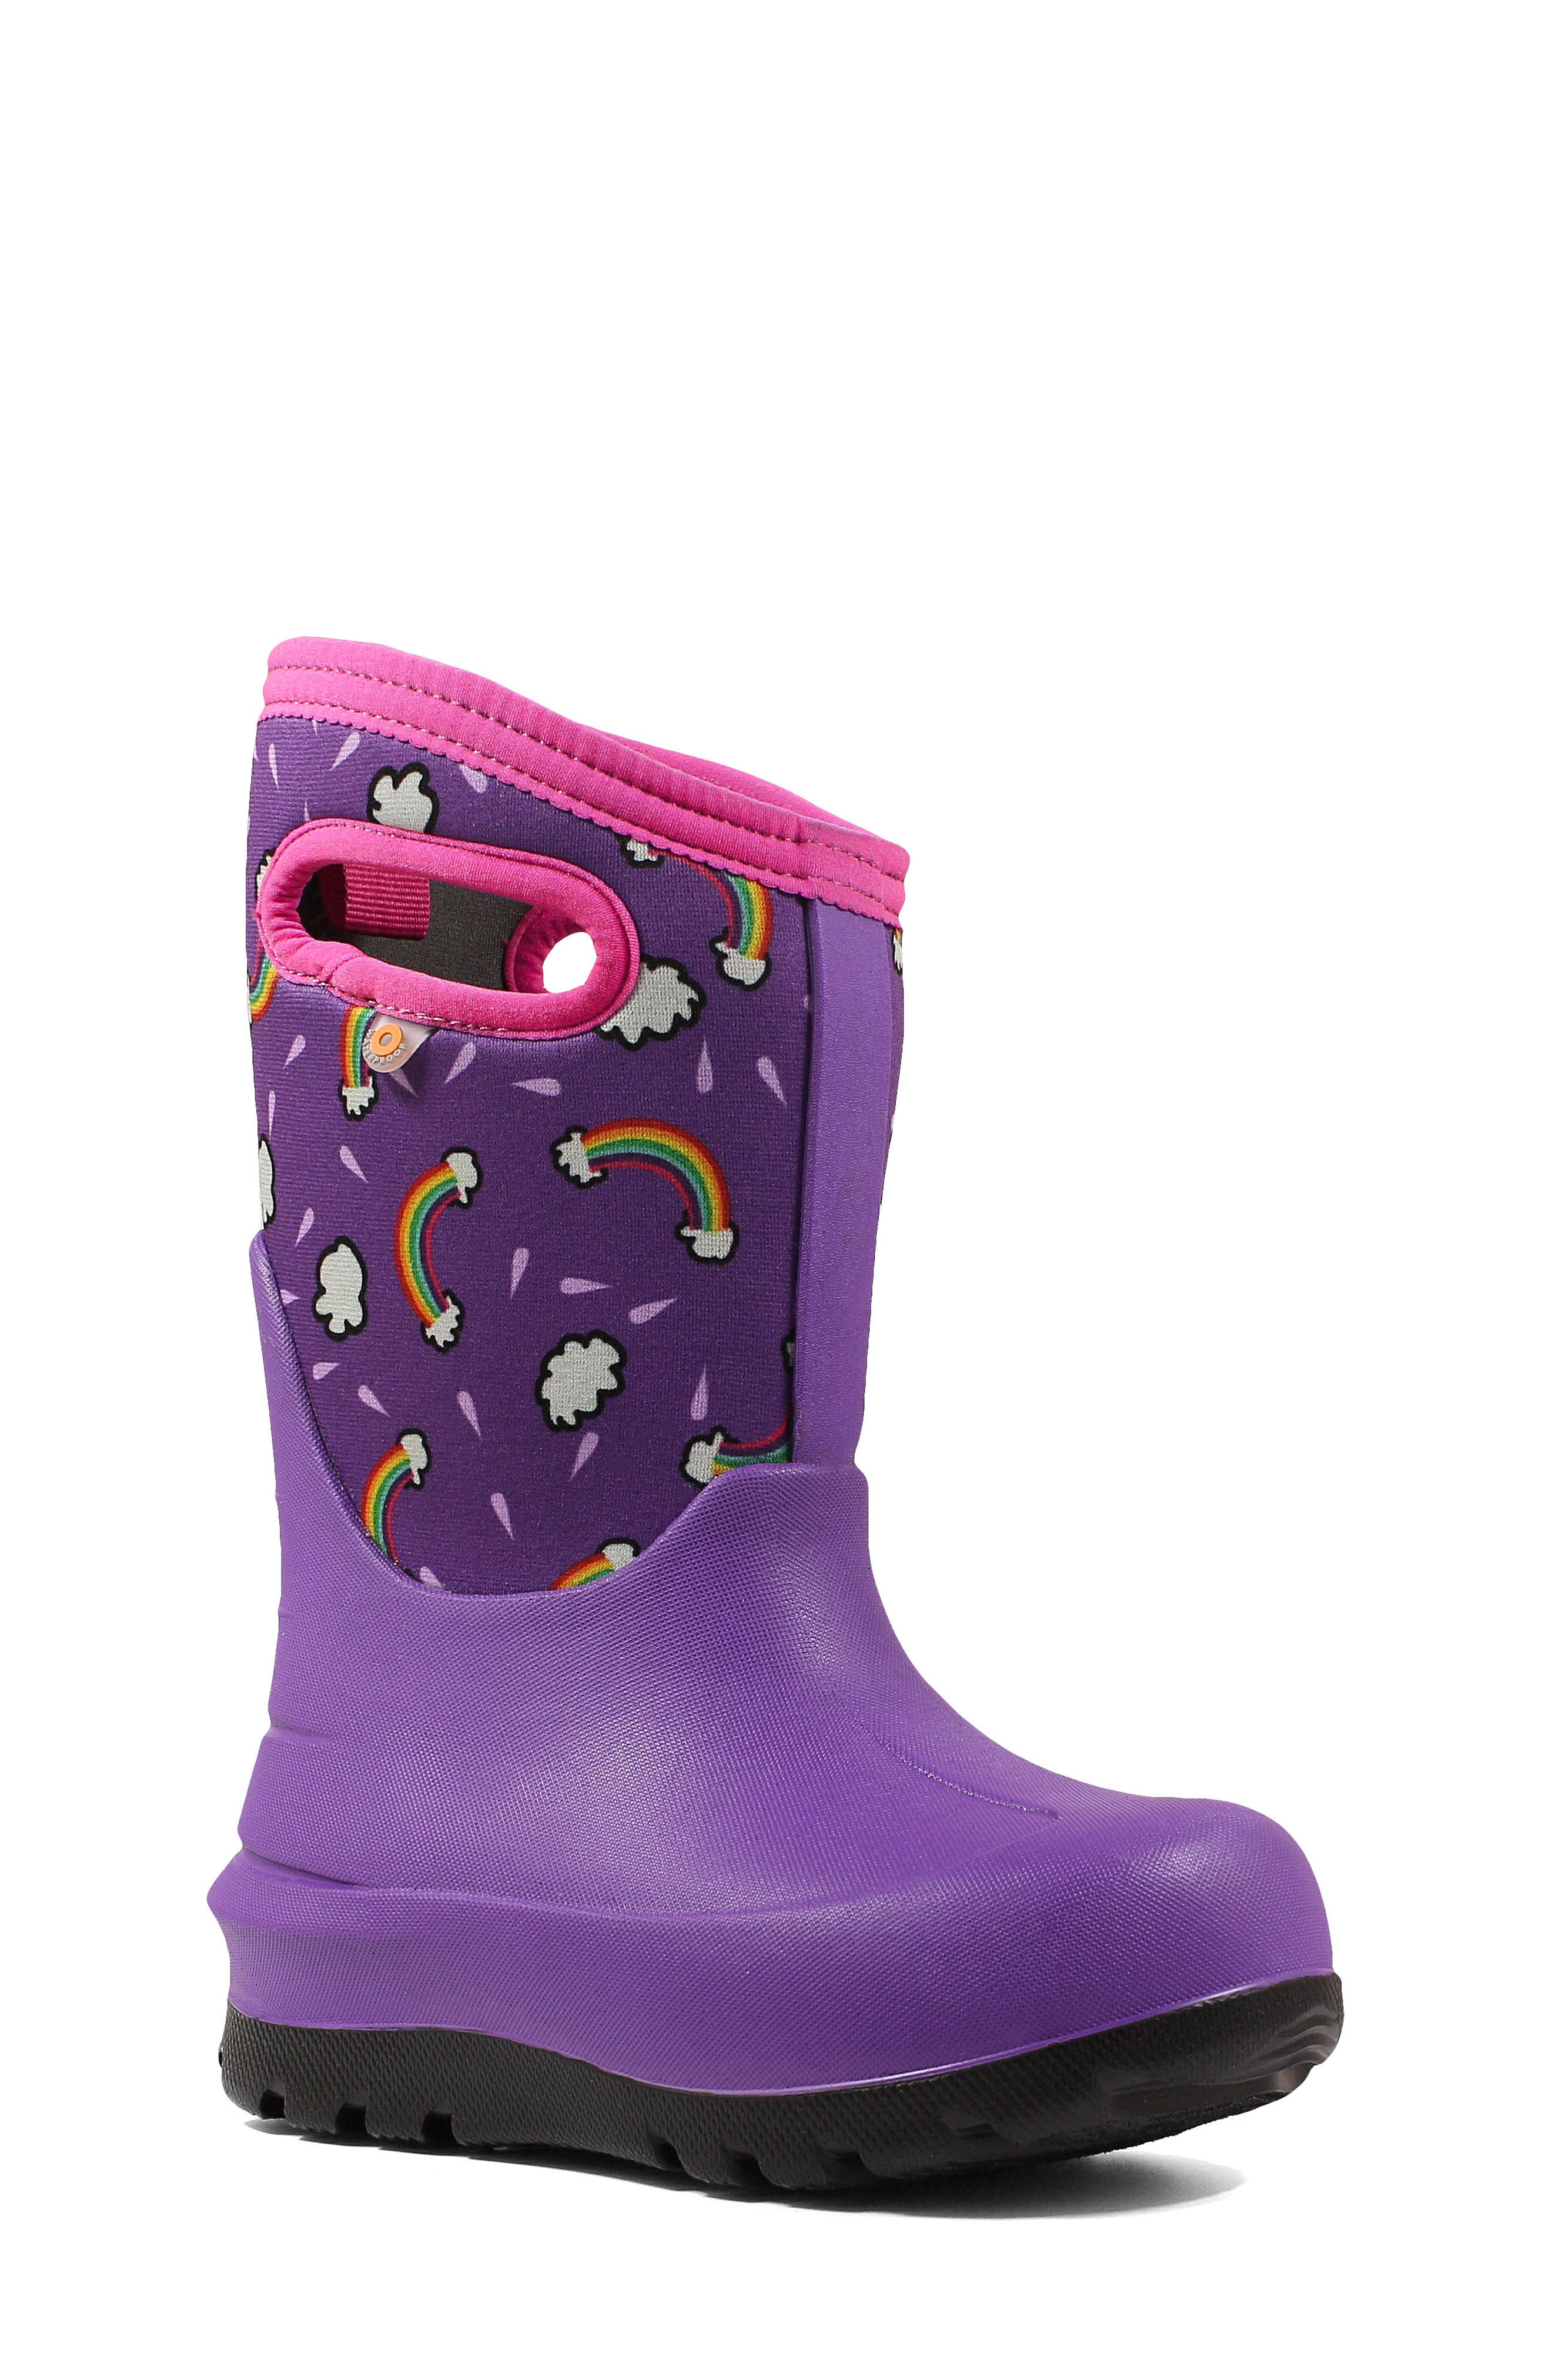 Toddler Girls Bogs Classic Rainbows Insulated Waterproof Boot Size 11 M  Purple